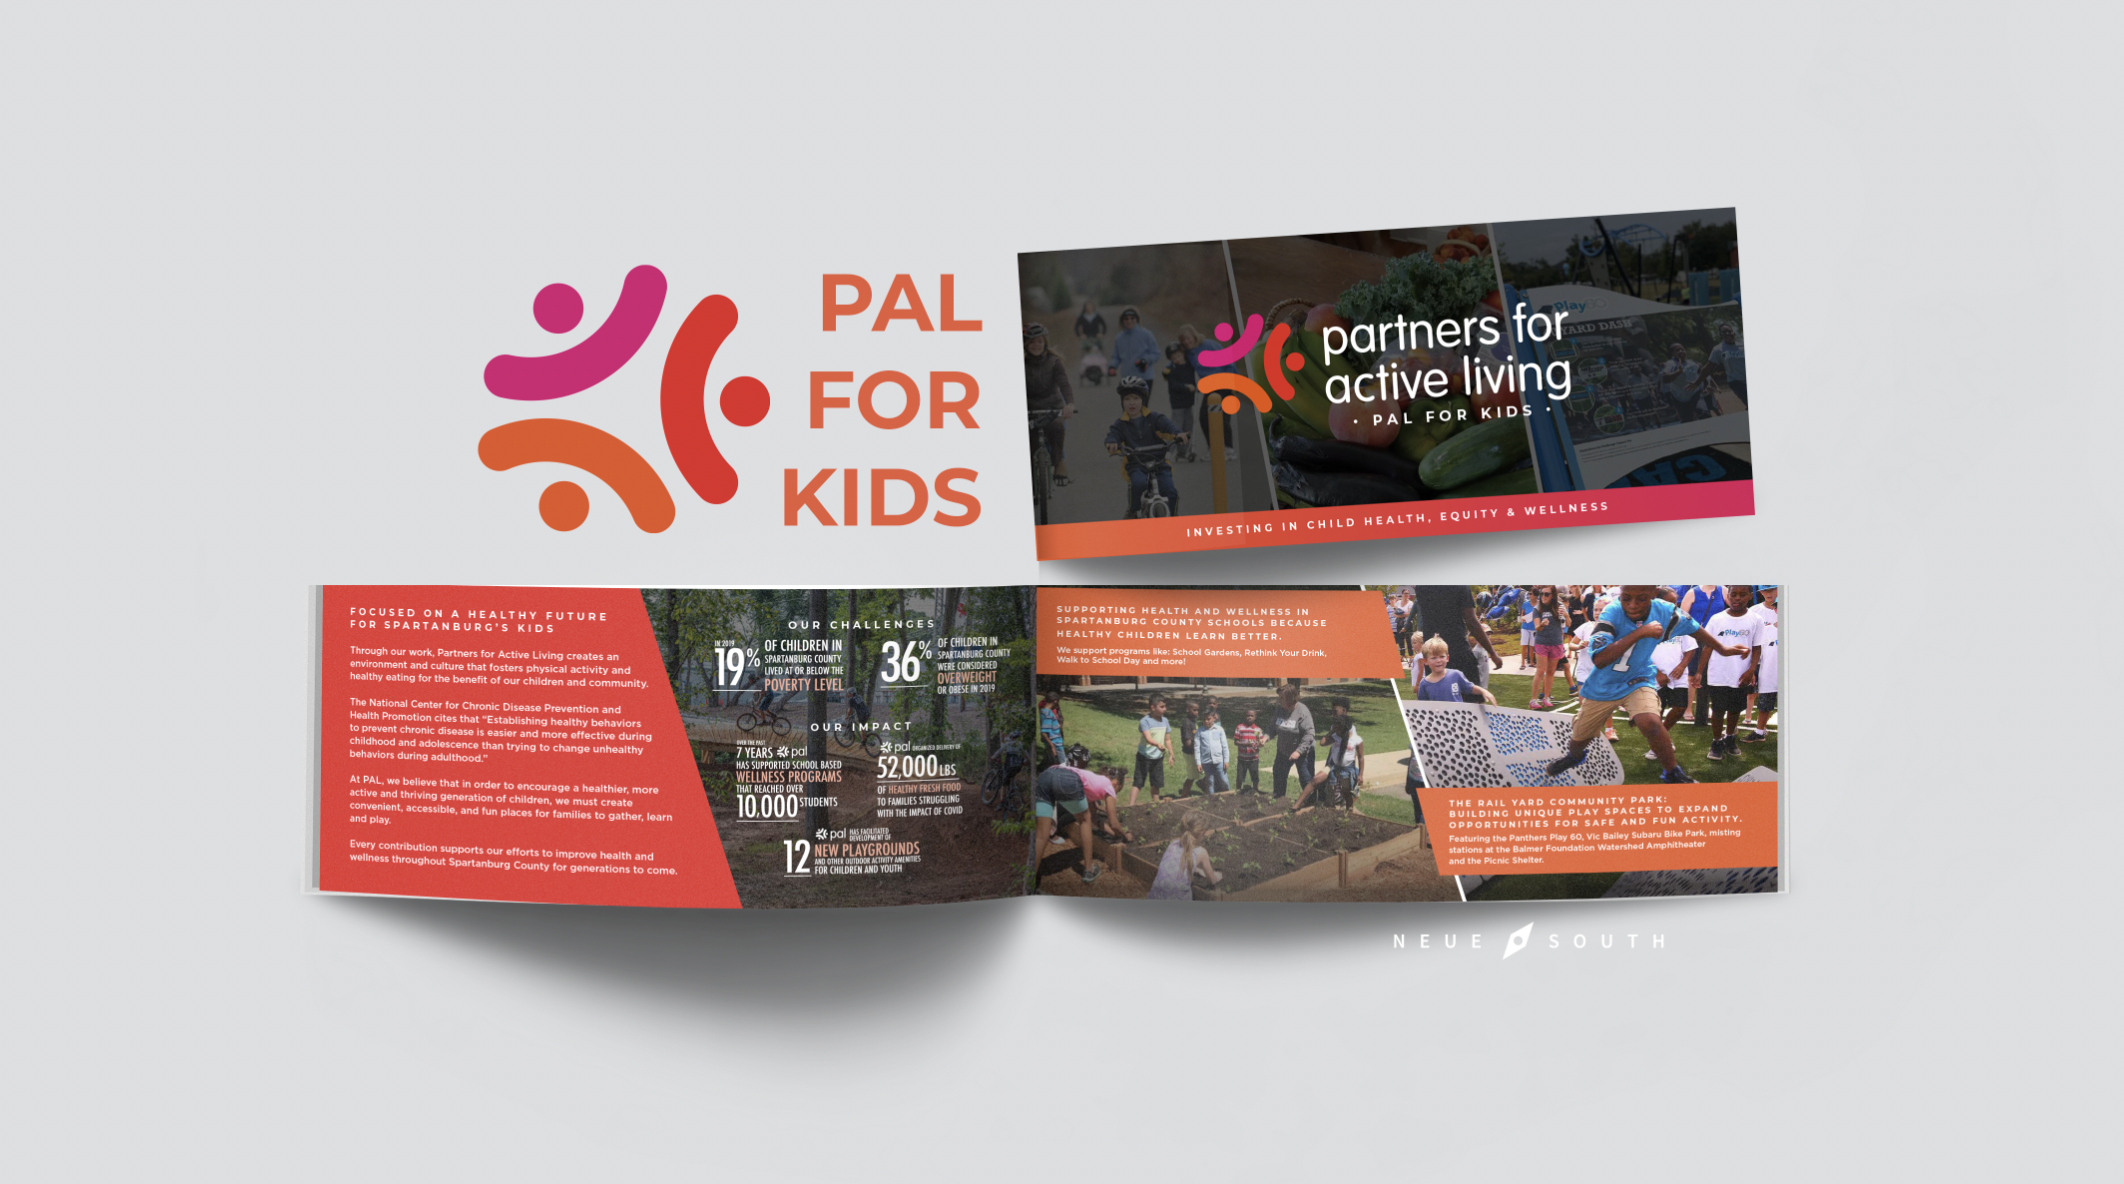 Partners for active living PAL for kids